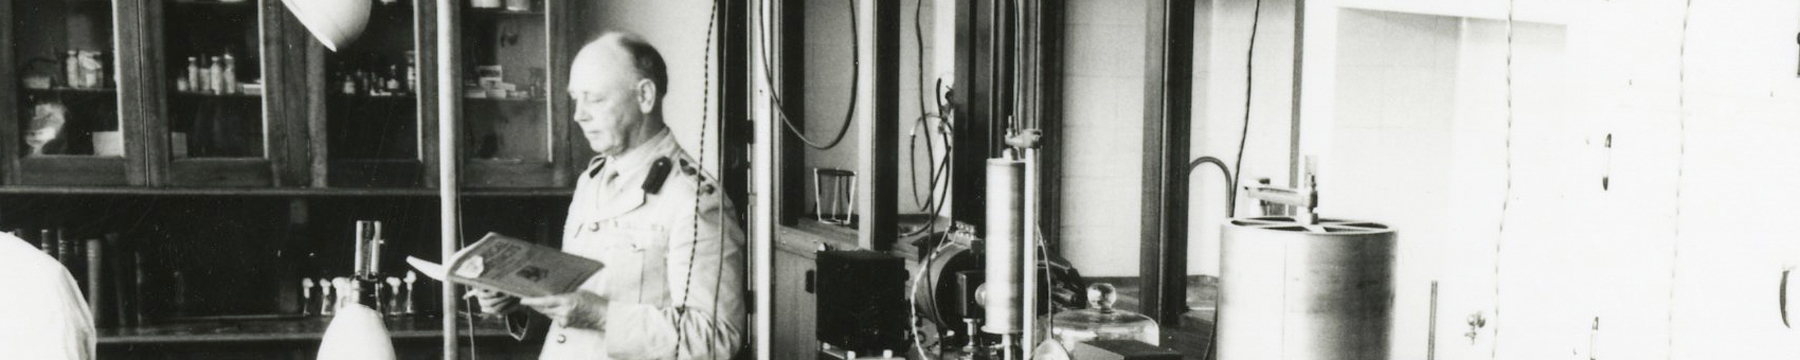 Dr Charles Kellaway in the lab